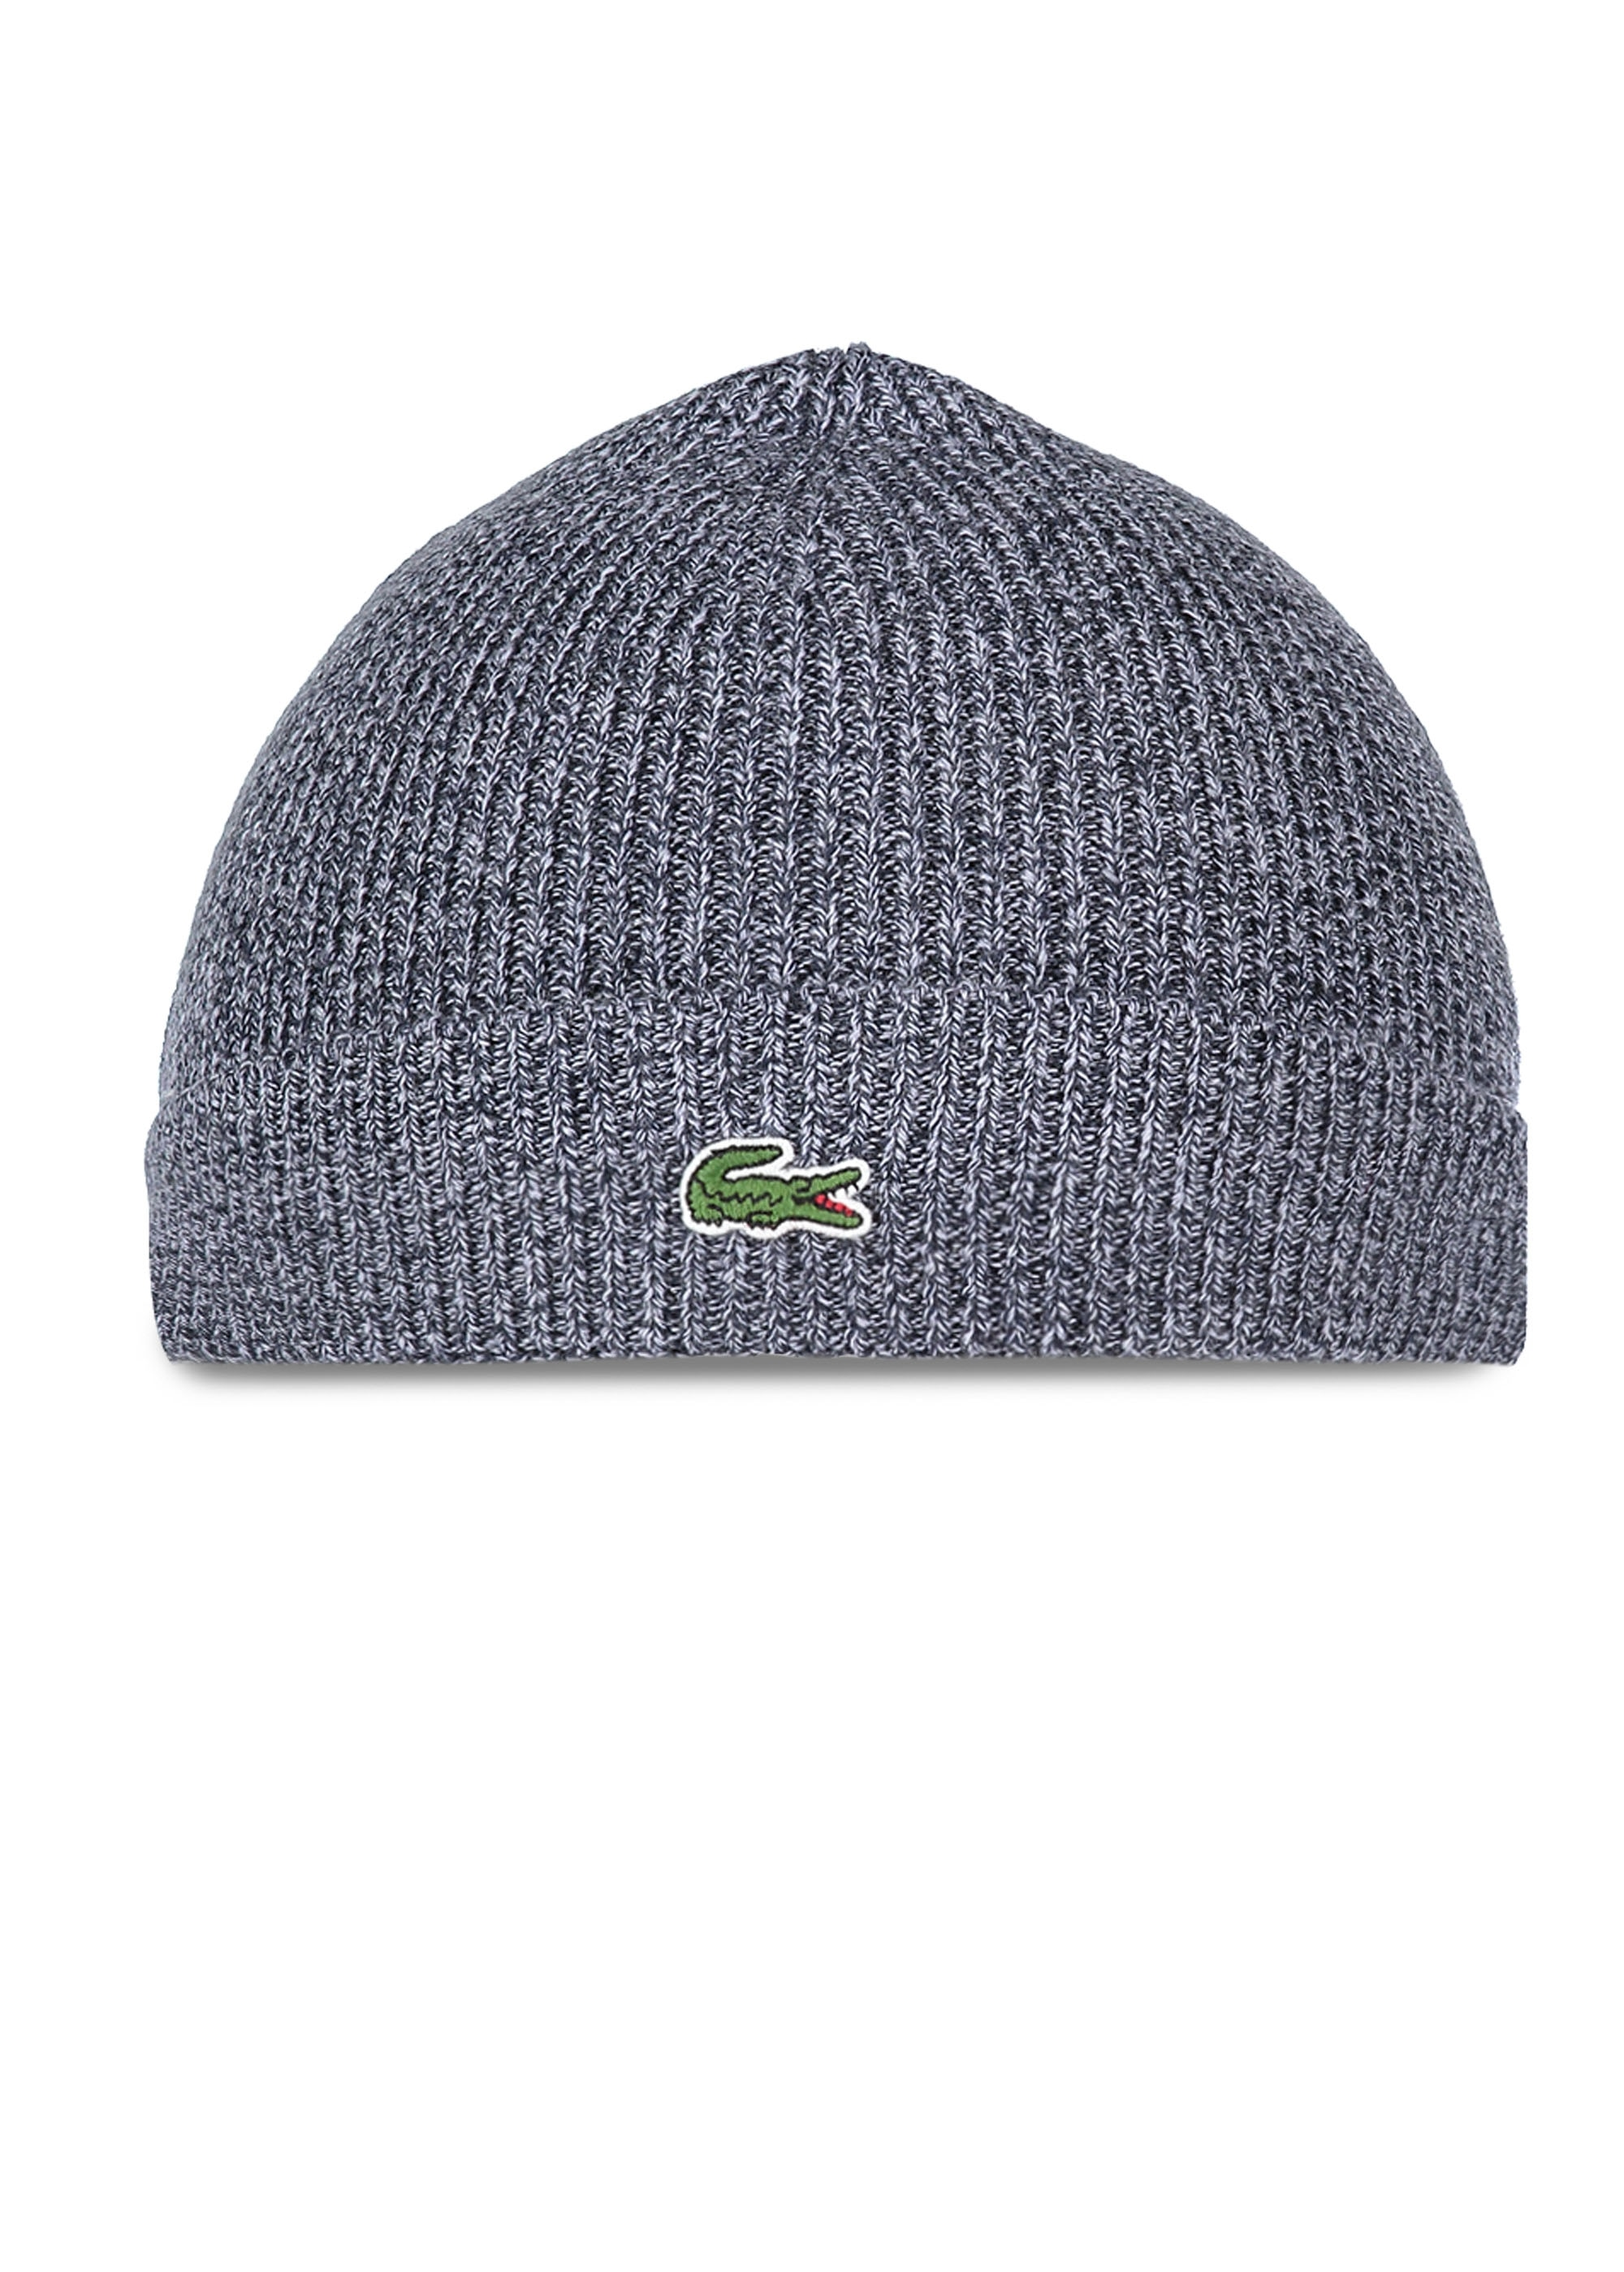 Lacoste Beanie Hat Mouline - Navy Blue - Headwear from Triads UK 6a74d1bede7